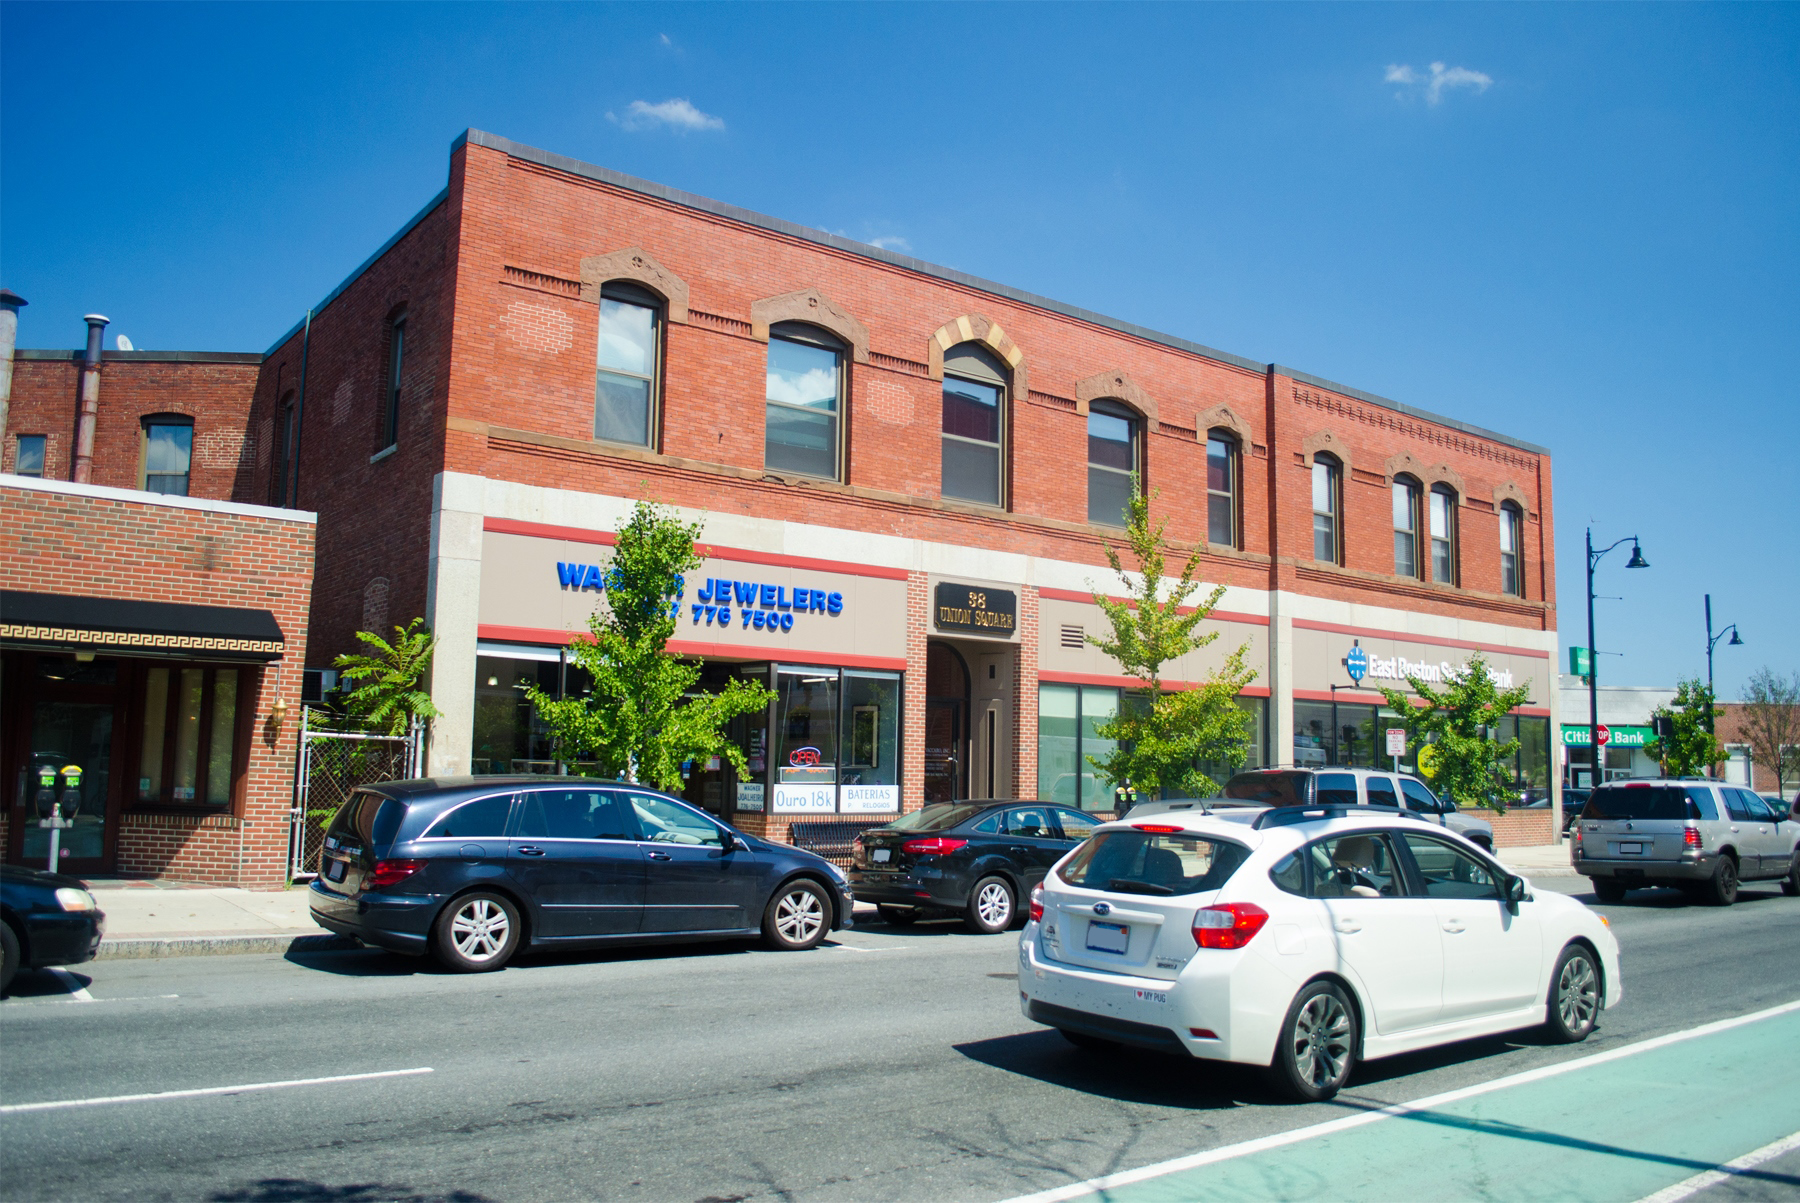 Office Space For Lease in Somerville's Union Square